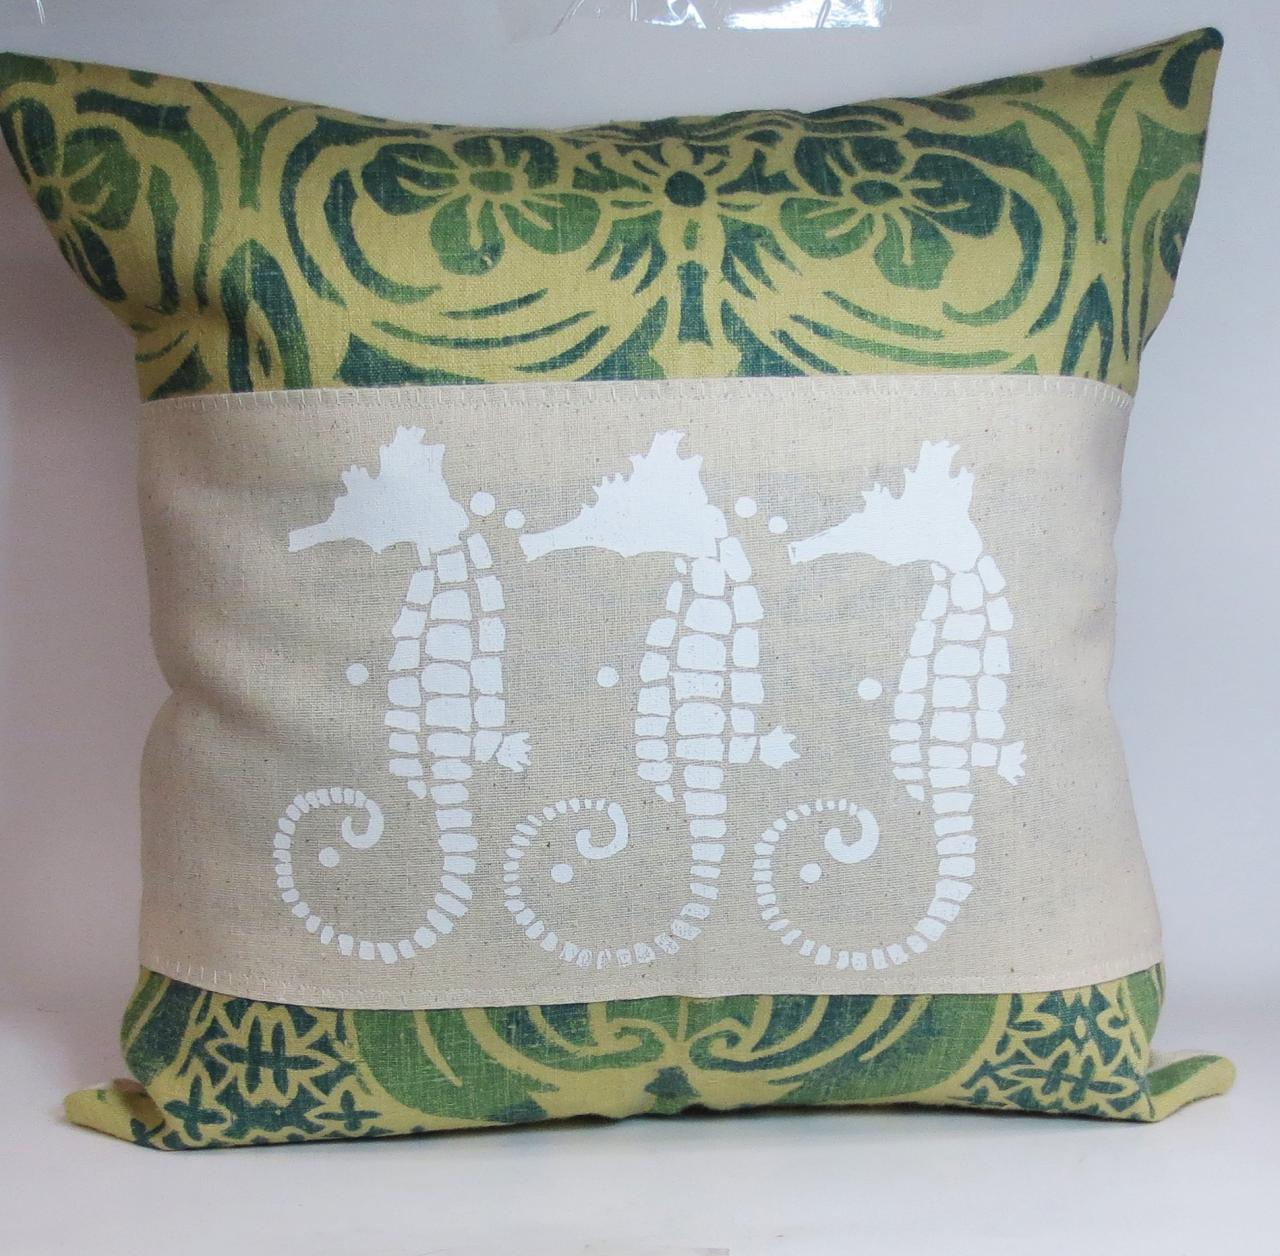 Shabby Chic Beach Pillows : Decorative Throw Pillow Cushion Cover With Screen Print White Sea Horses Beach Shabby Chic Theme ...